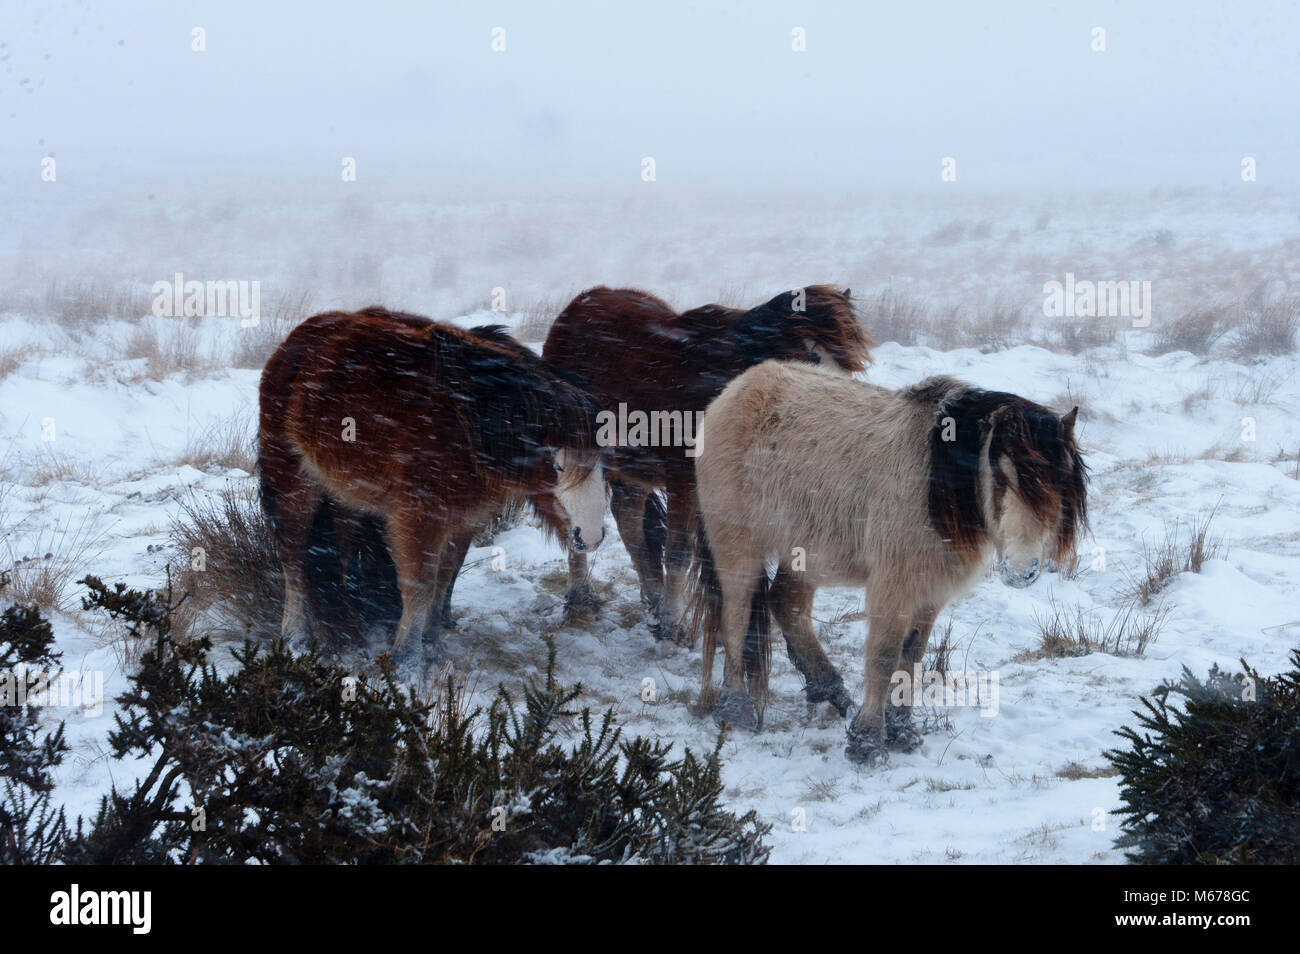 Builth Wells, Powys, Wales, UK. 1st March, 2018. On the first day of Spring, Welsh Mountain Ponies huddle together Stock Photo